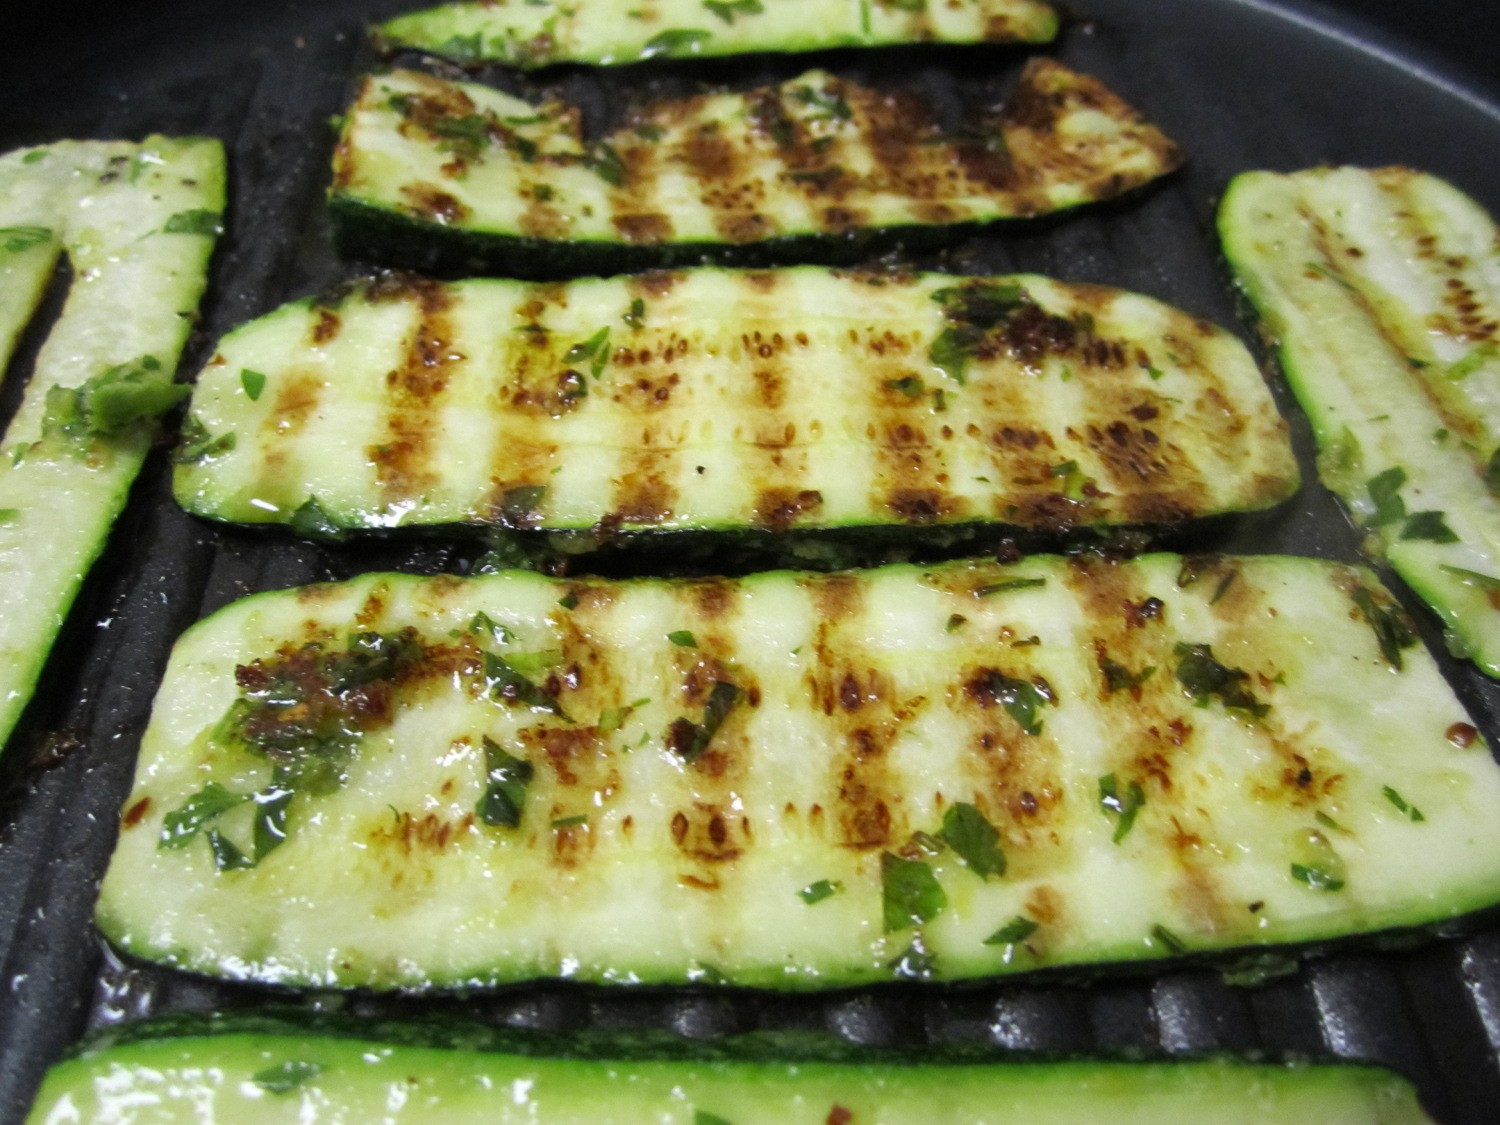 How Long To Grill Zucchini Grilled Zucchini and Mushroom Quesadillas